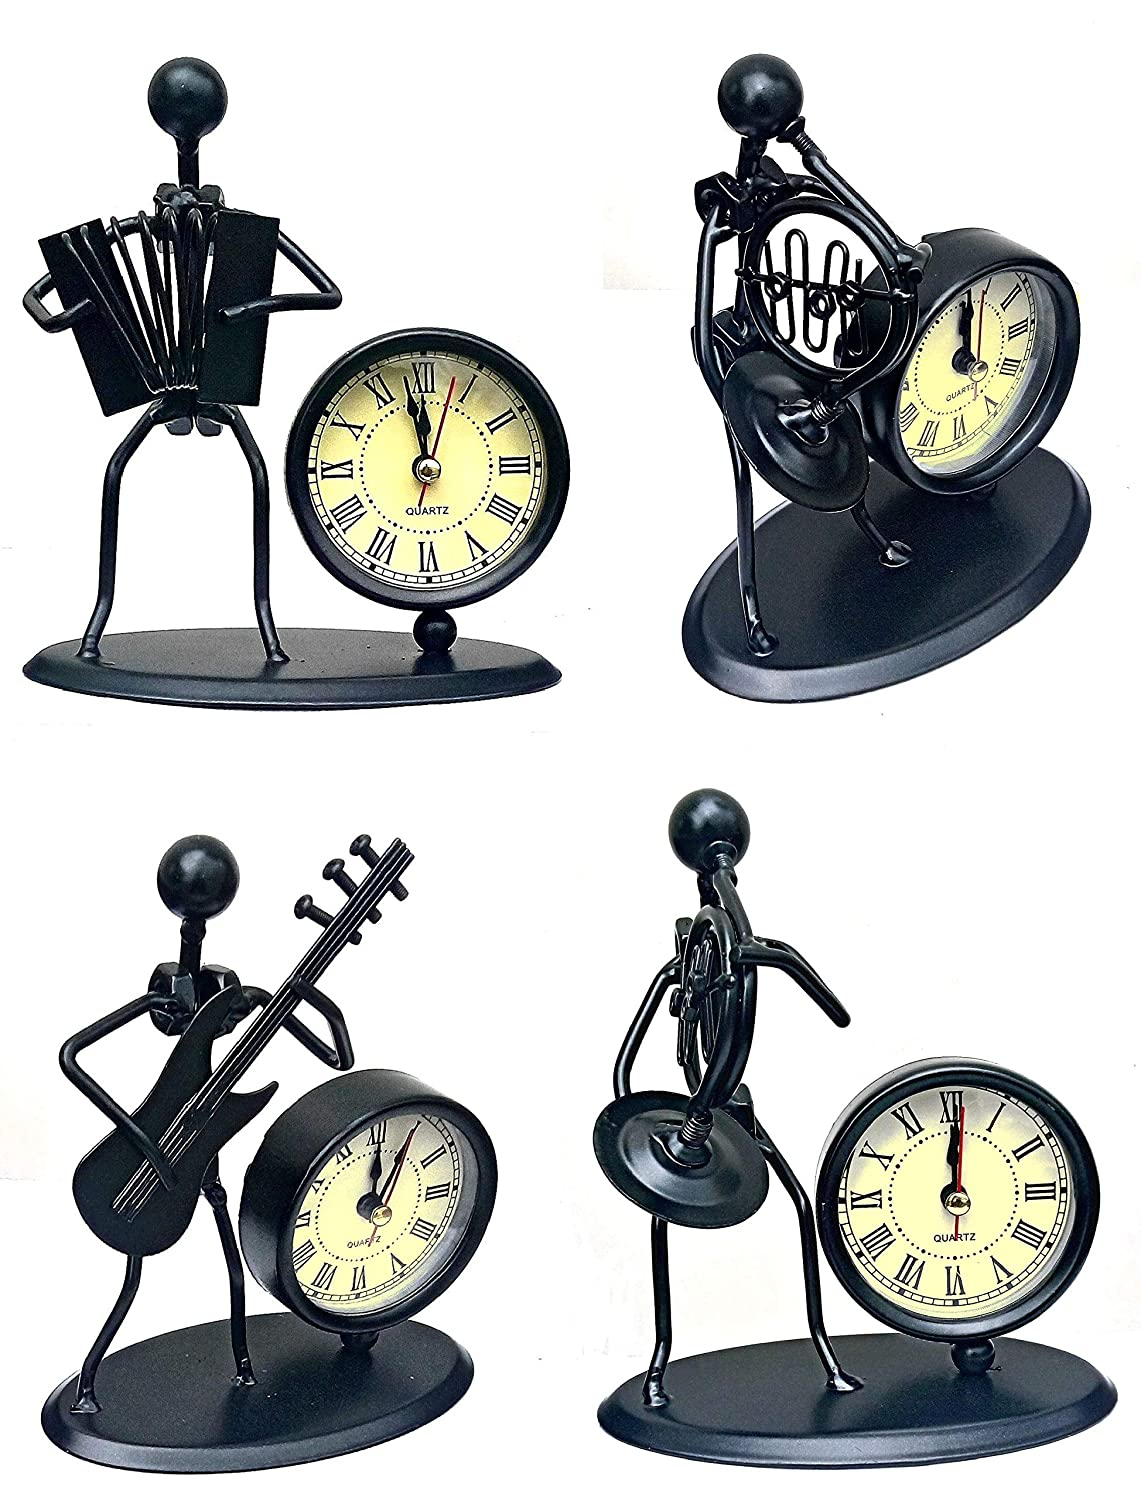 Mohangifts Scrap Metal Art Table Clock With Metal Musician Figurine 5 Amazon In Home Kitchen